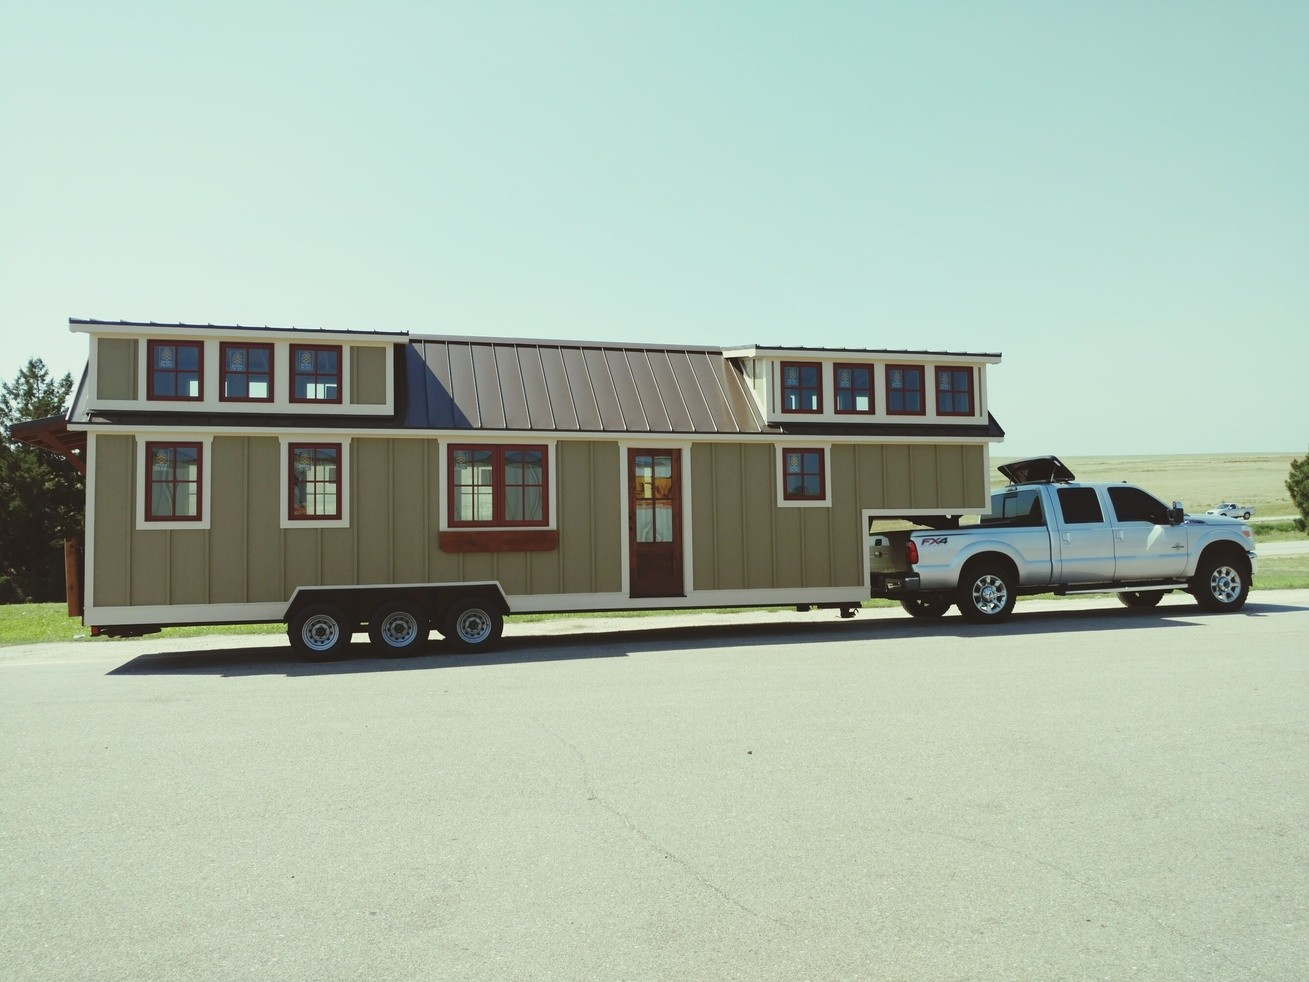 Timbercraft is selling tiny home trailers  Timbercraft Tiny Homes